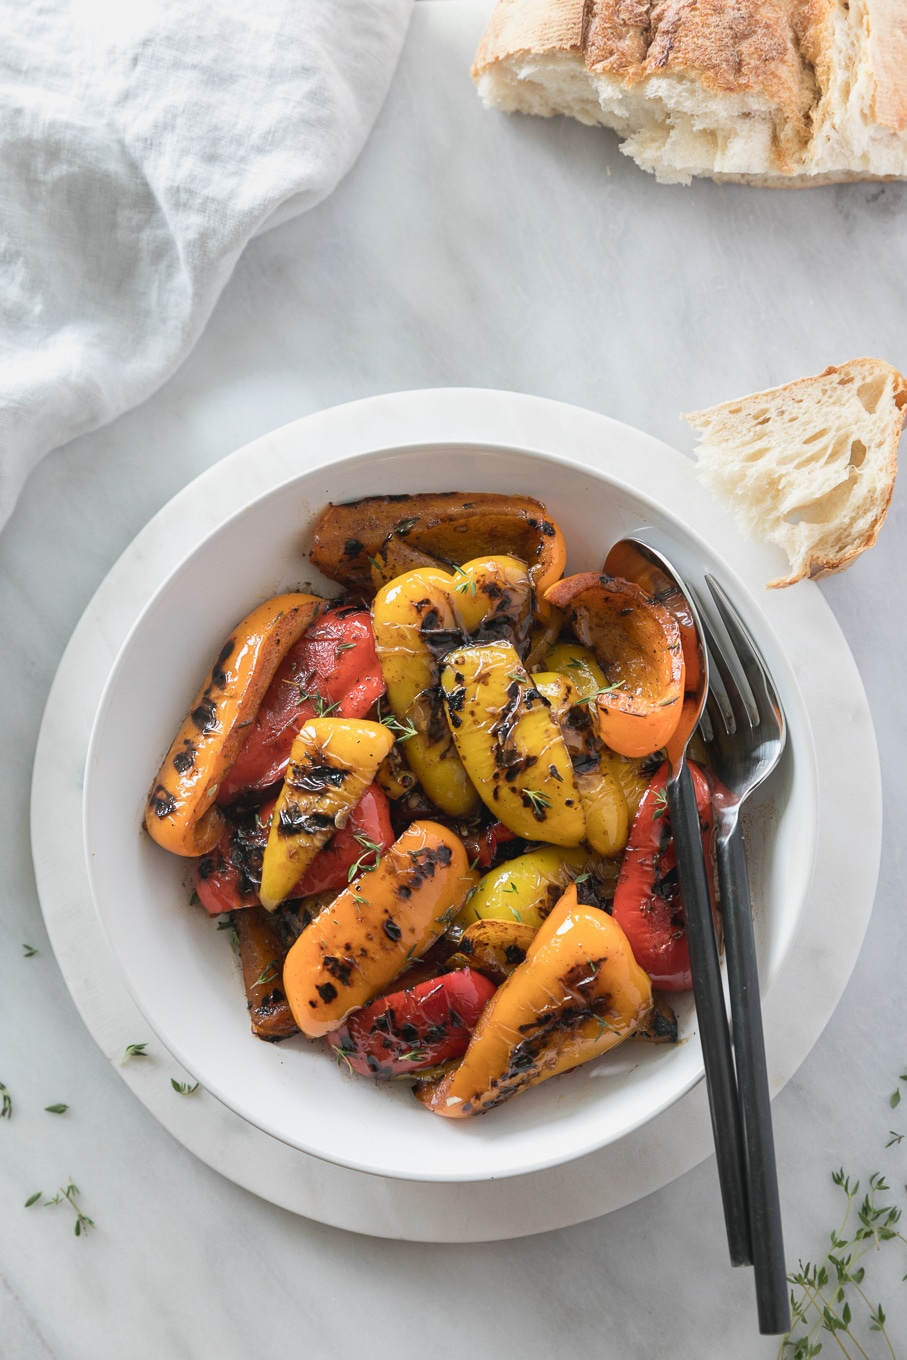 Overhead shot of a bowl of grilled peppers with a large spoon and fork in the bowl, as well as a half piece of bread off to the side